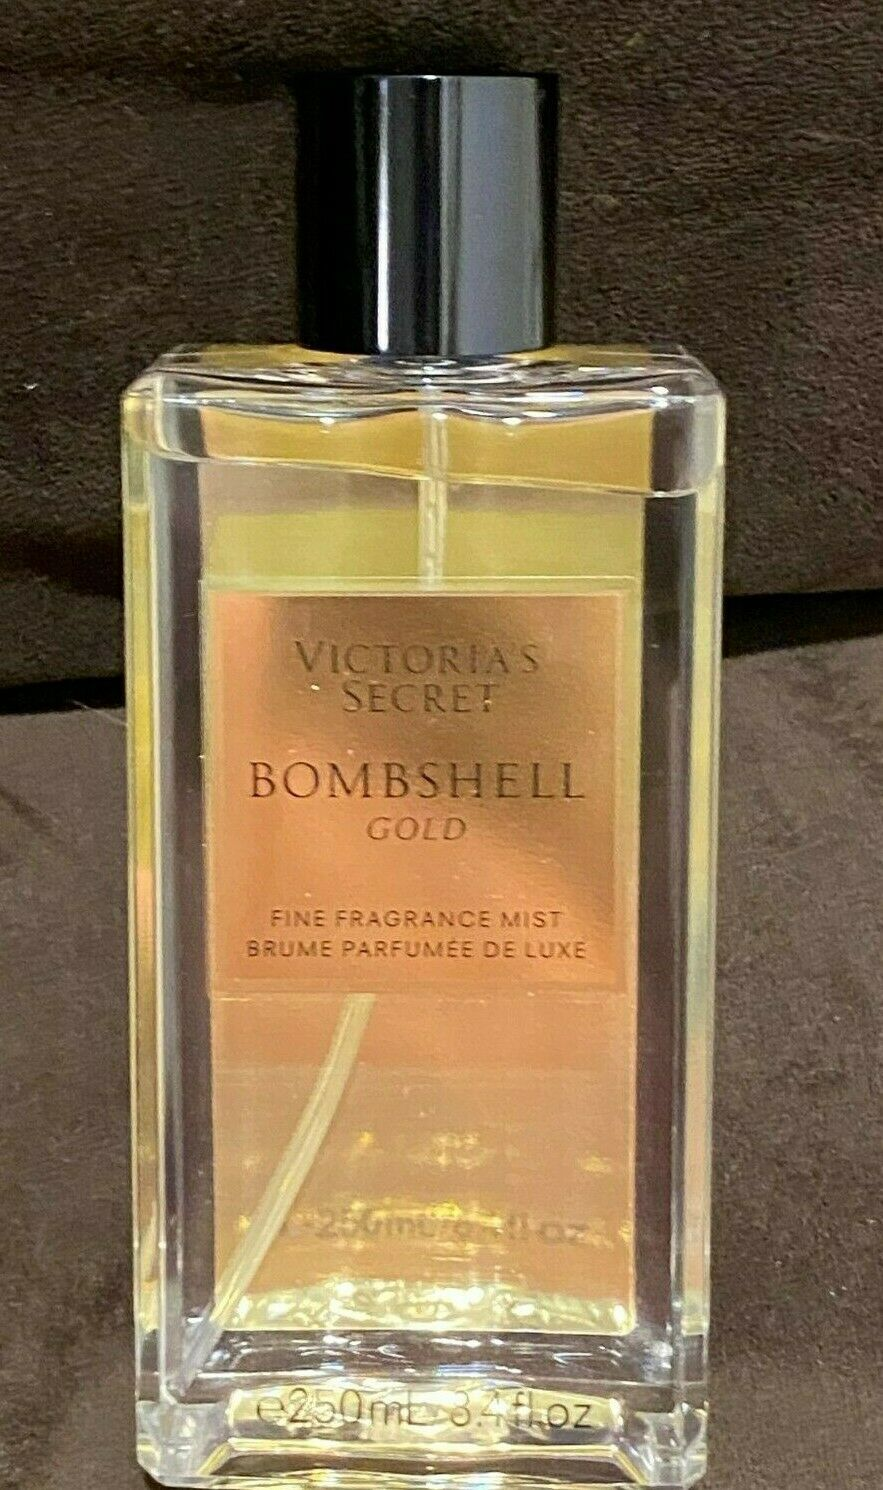 Primary image for New VICTORIA'S SECRET Bombshell Gold Fine Fragrance Mist retail price $25.00